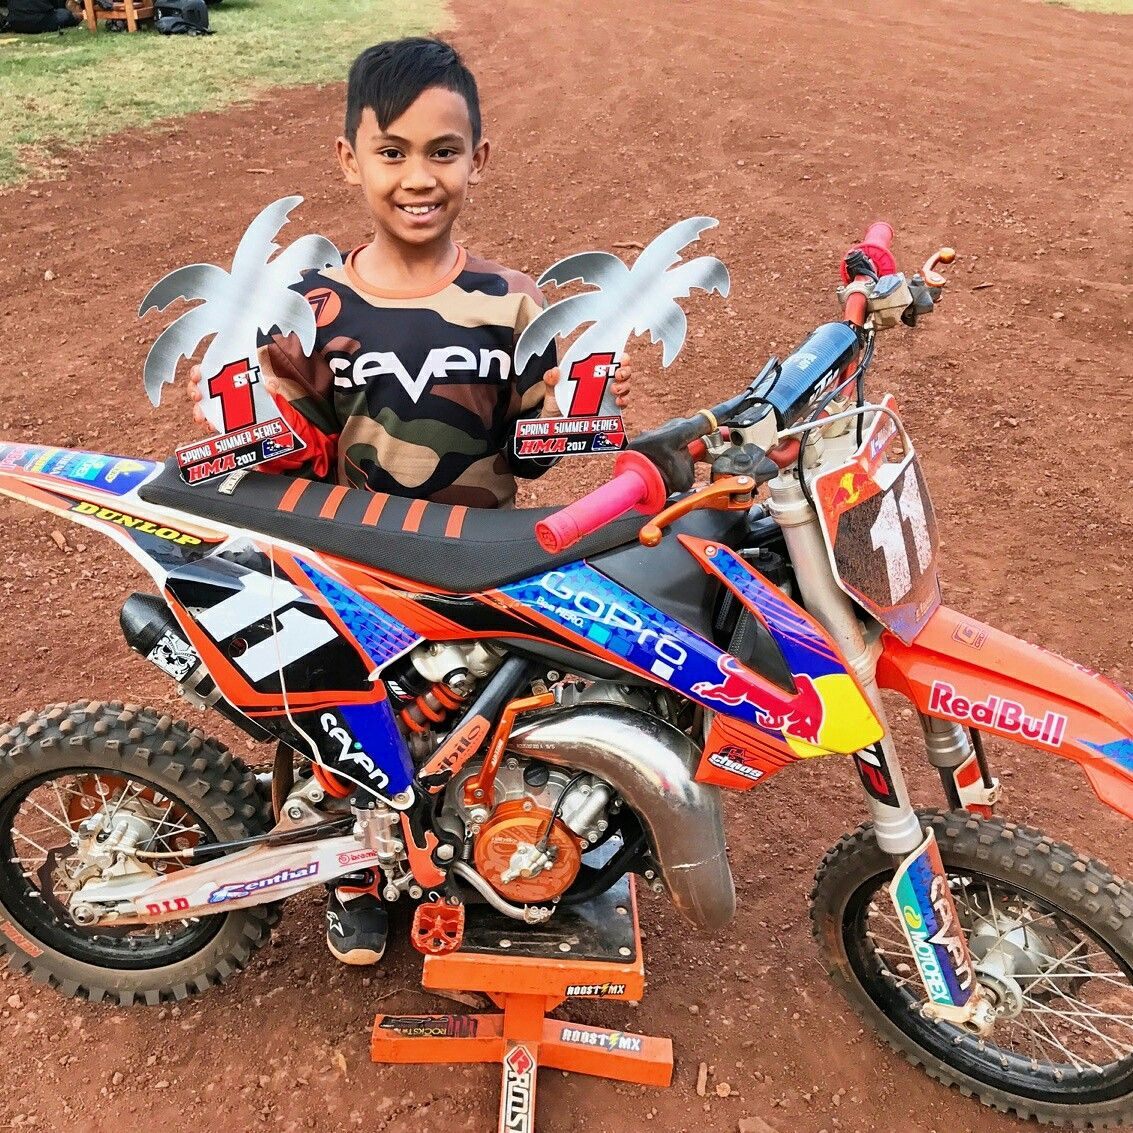 Ktm 65 mx graphics #ChaosGraphics #LifeOfChaos ☆GET NOTICED